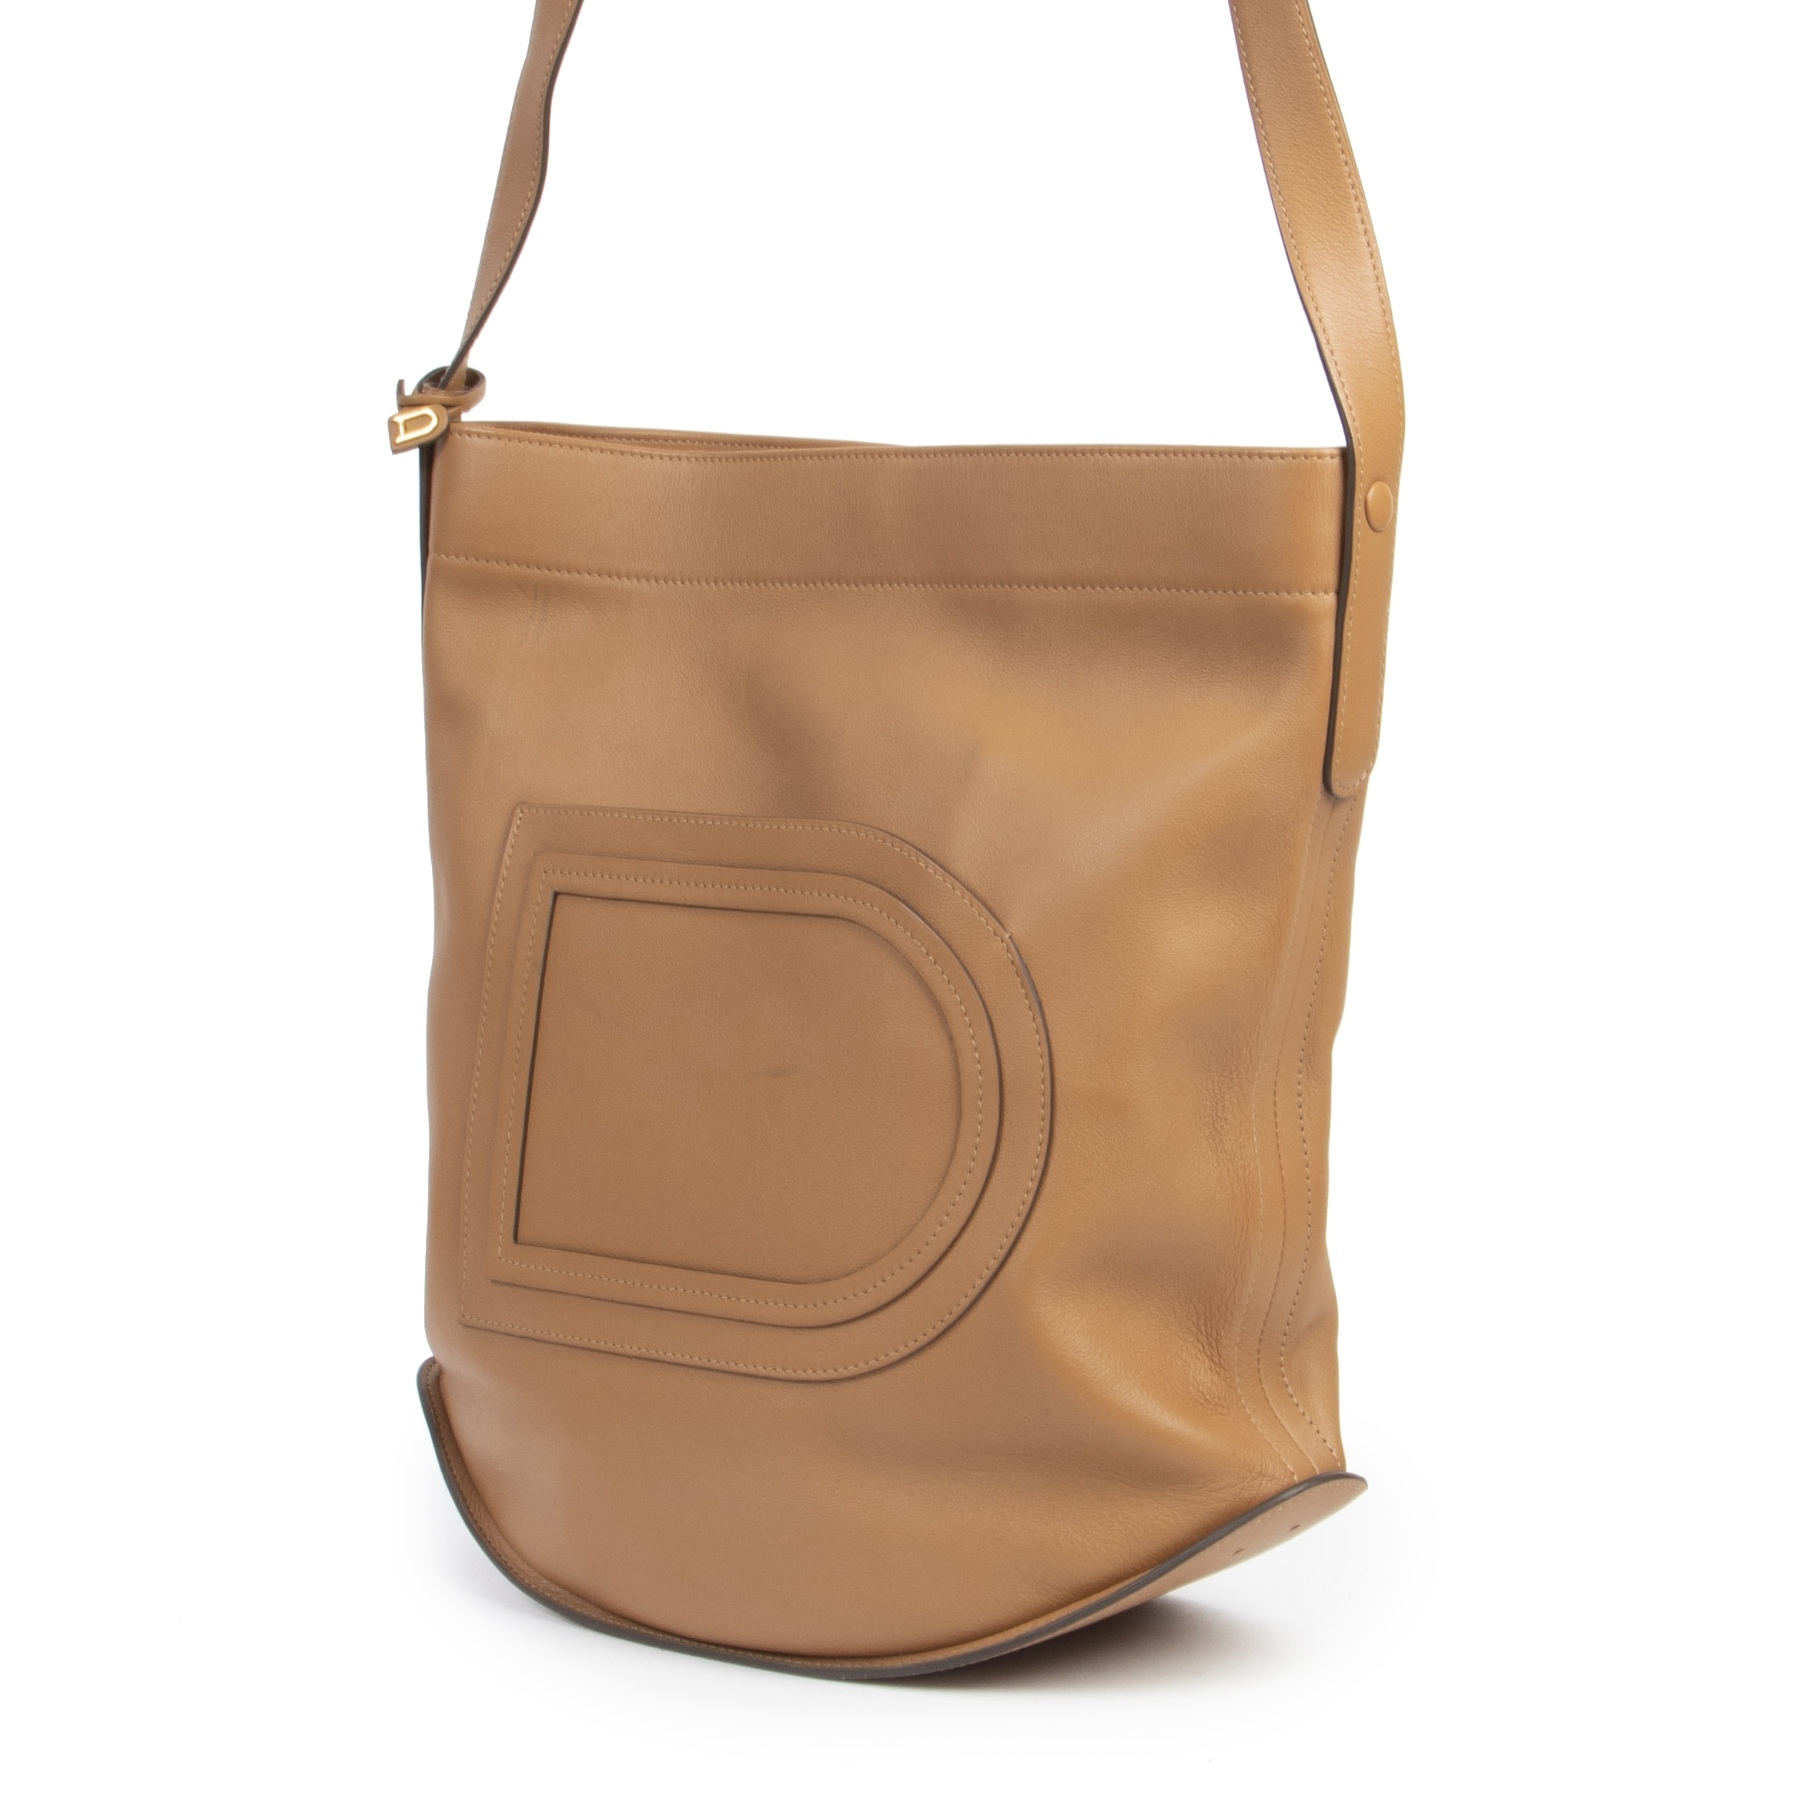 Authentieke tweedehands vintage Delvaux Camel Pin Shoulder Bag koop online webshop LabelLOV